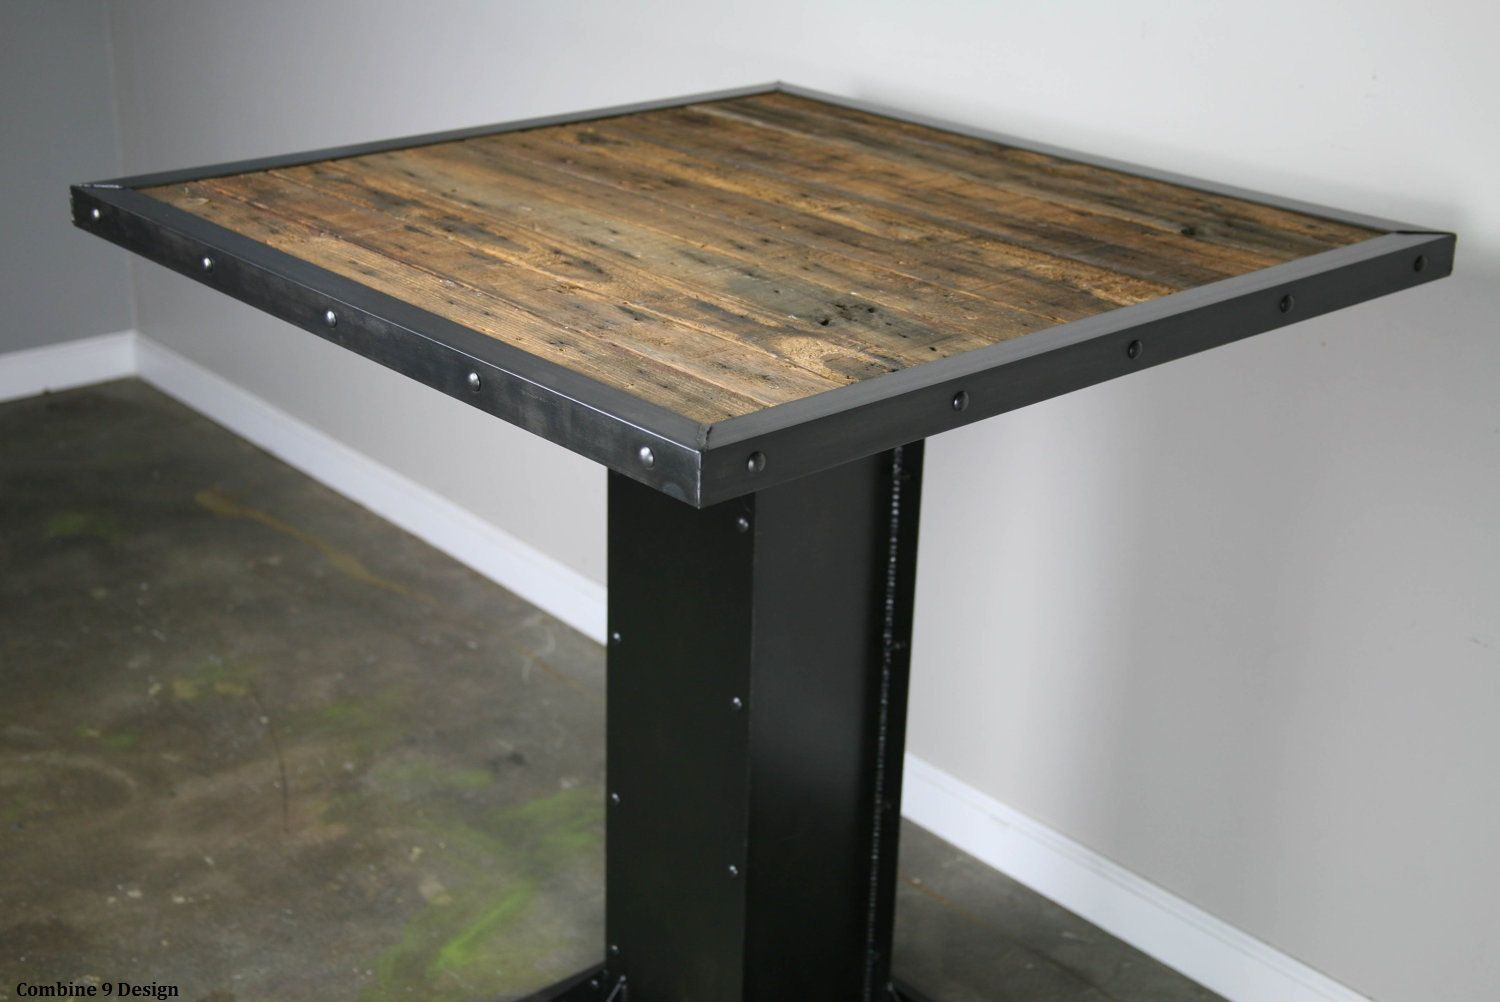 Cafe table and chairs design - Industrial Bistro Table Modern Style Dining Table Reclaimed Wood And Steel Bistro Table Rustic Restaurant Furniture Urban Bar Furniture